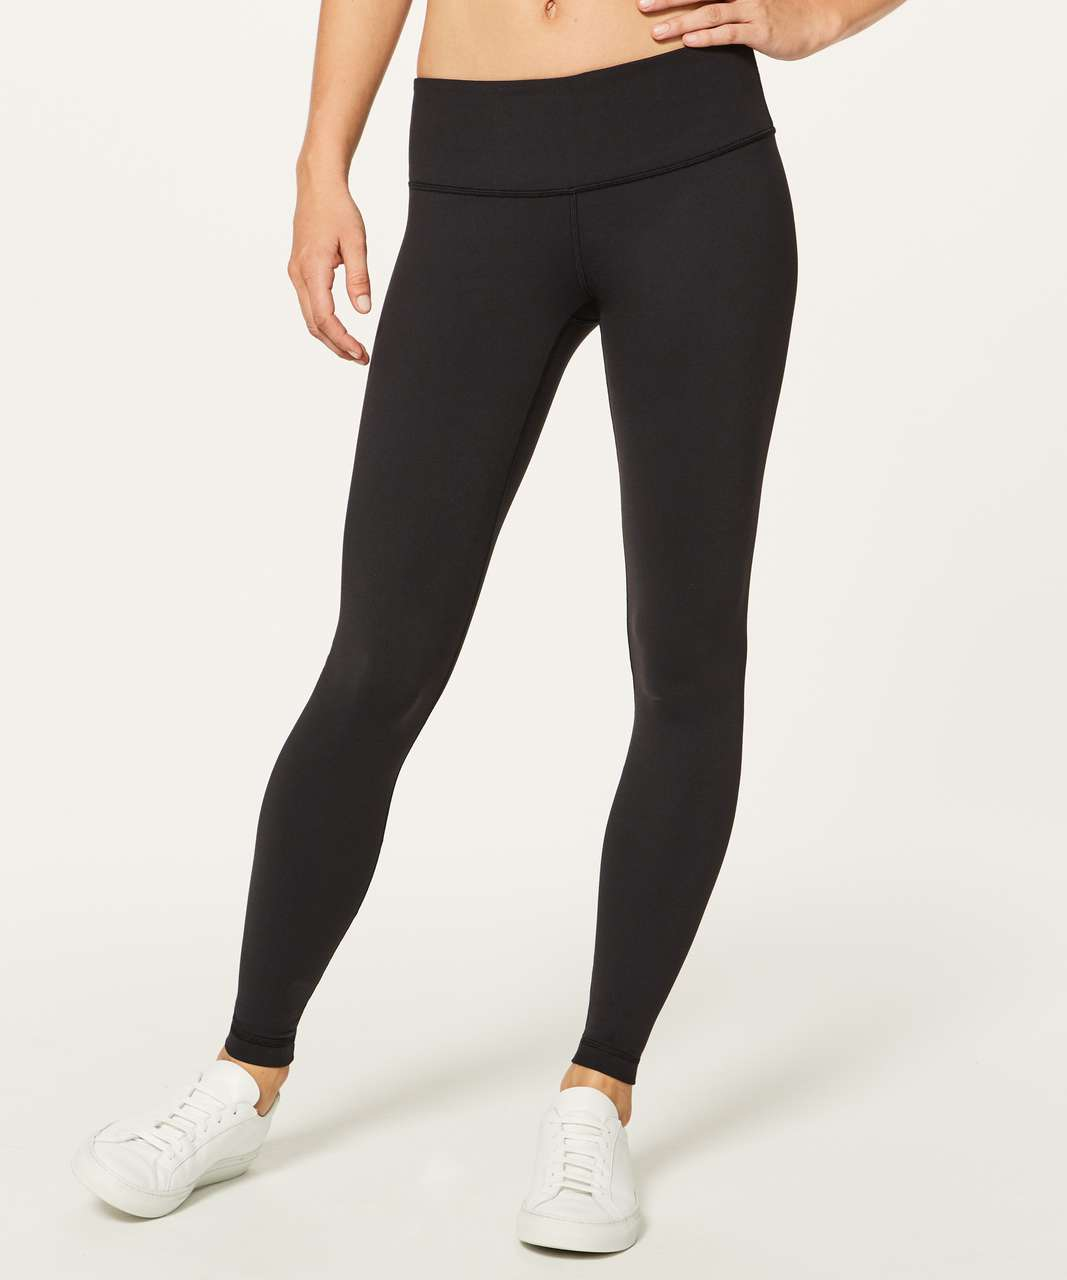 4910c803d6 Lululemon Wunder Under Low-Rise Tight *Full-On Luon 28